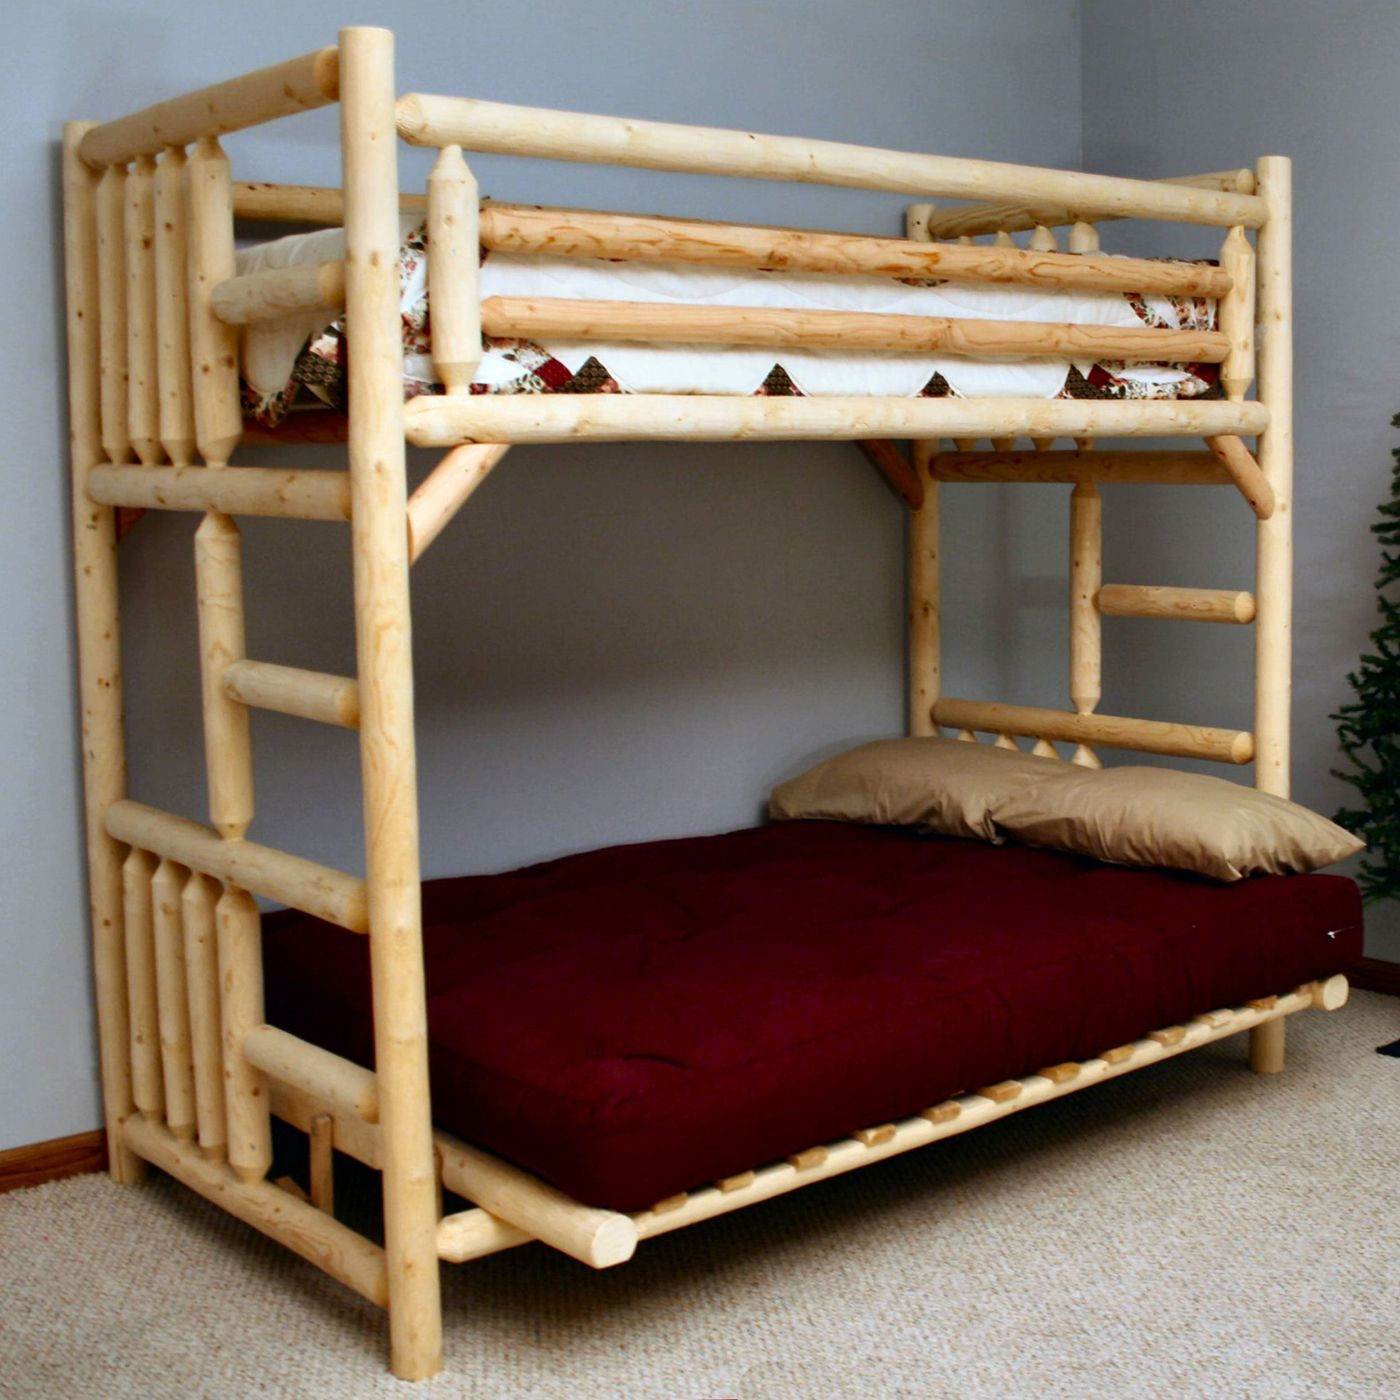 Lakeland Mills Bbtf38 L Twin Over Futon Bunk Bed Rustic Country